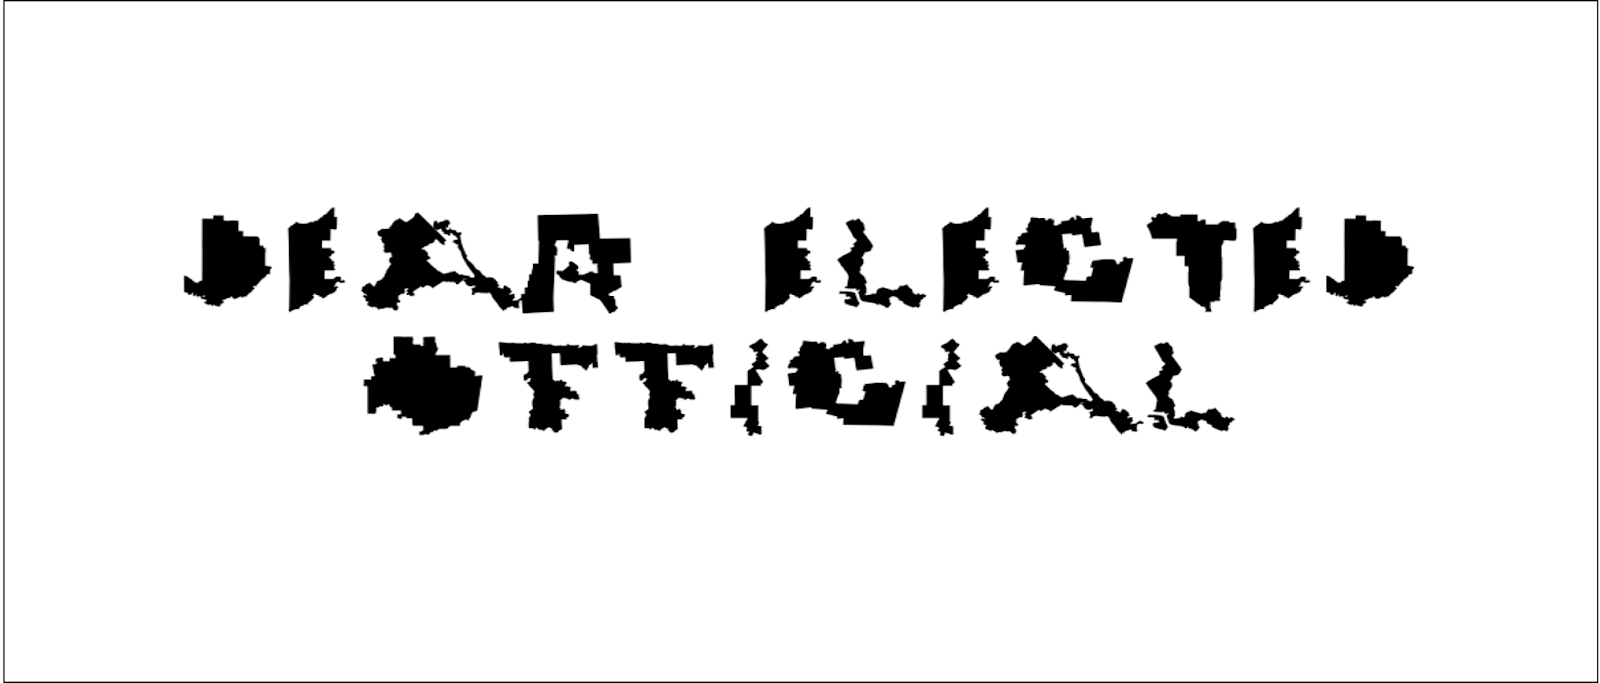 This Font Is Made of Ridiculously Gerrymandered Congressional